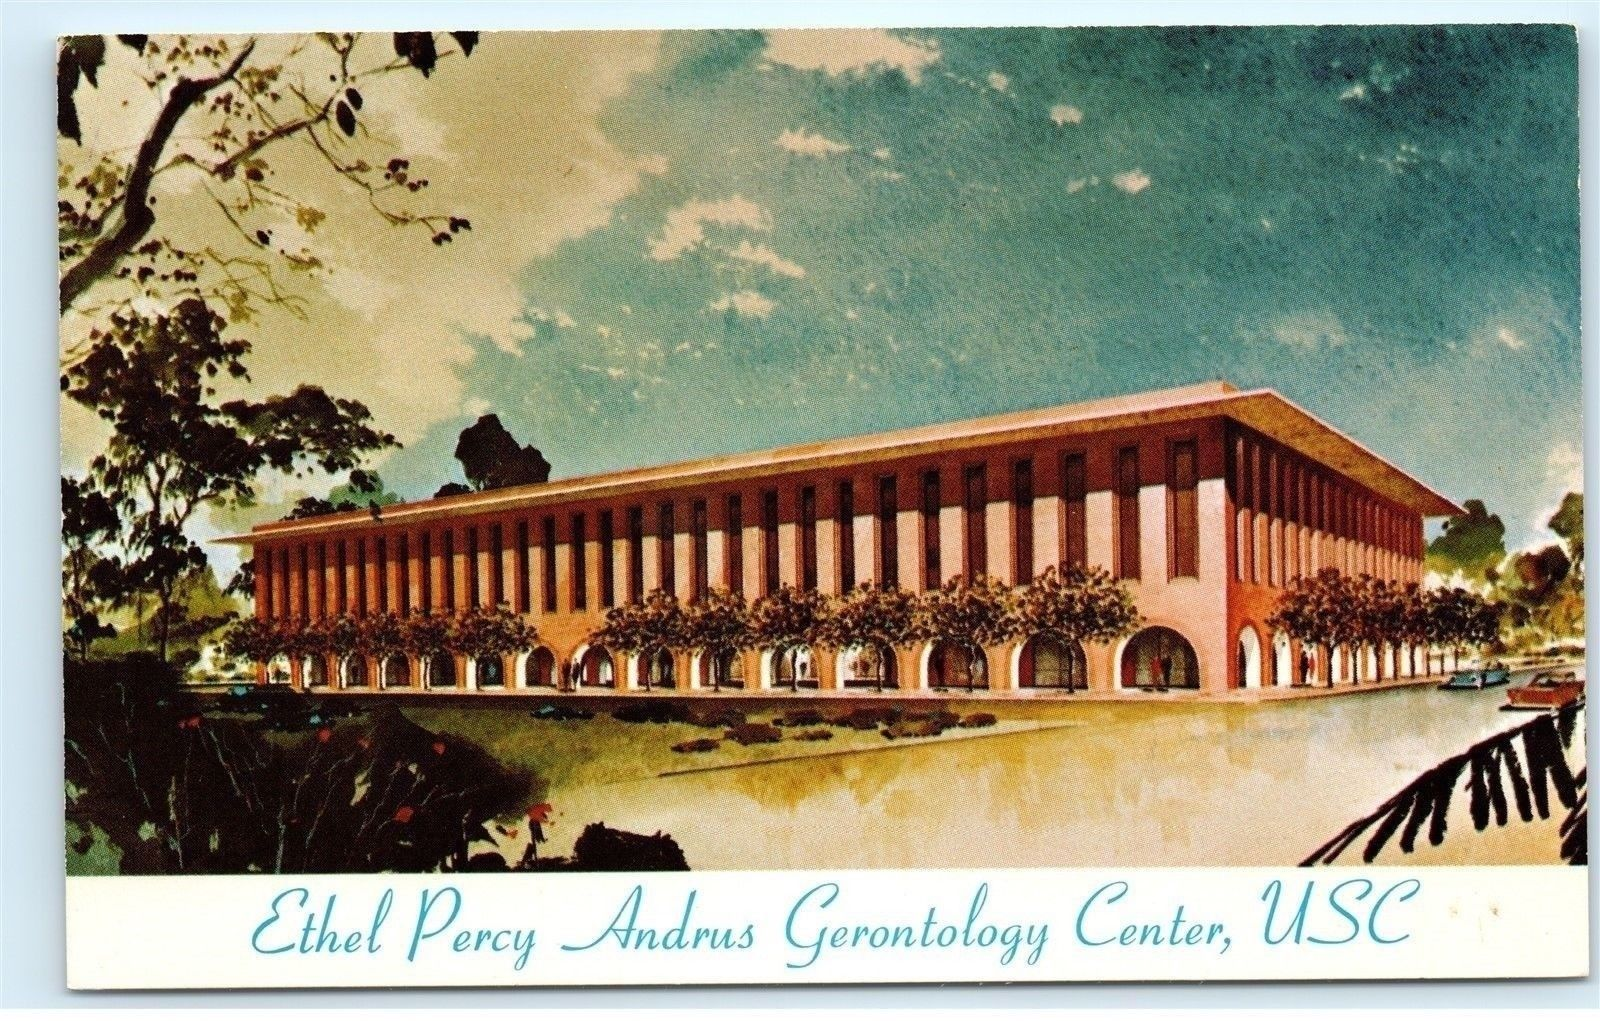 Ethel Percy Andrus Gerontology Center USC University Southern ...